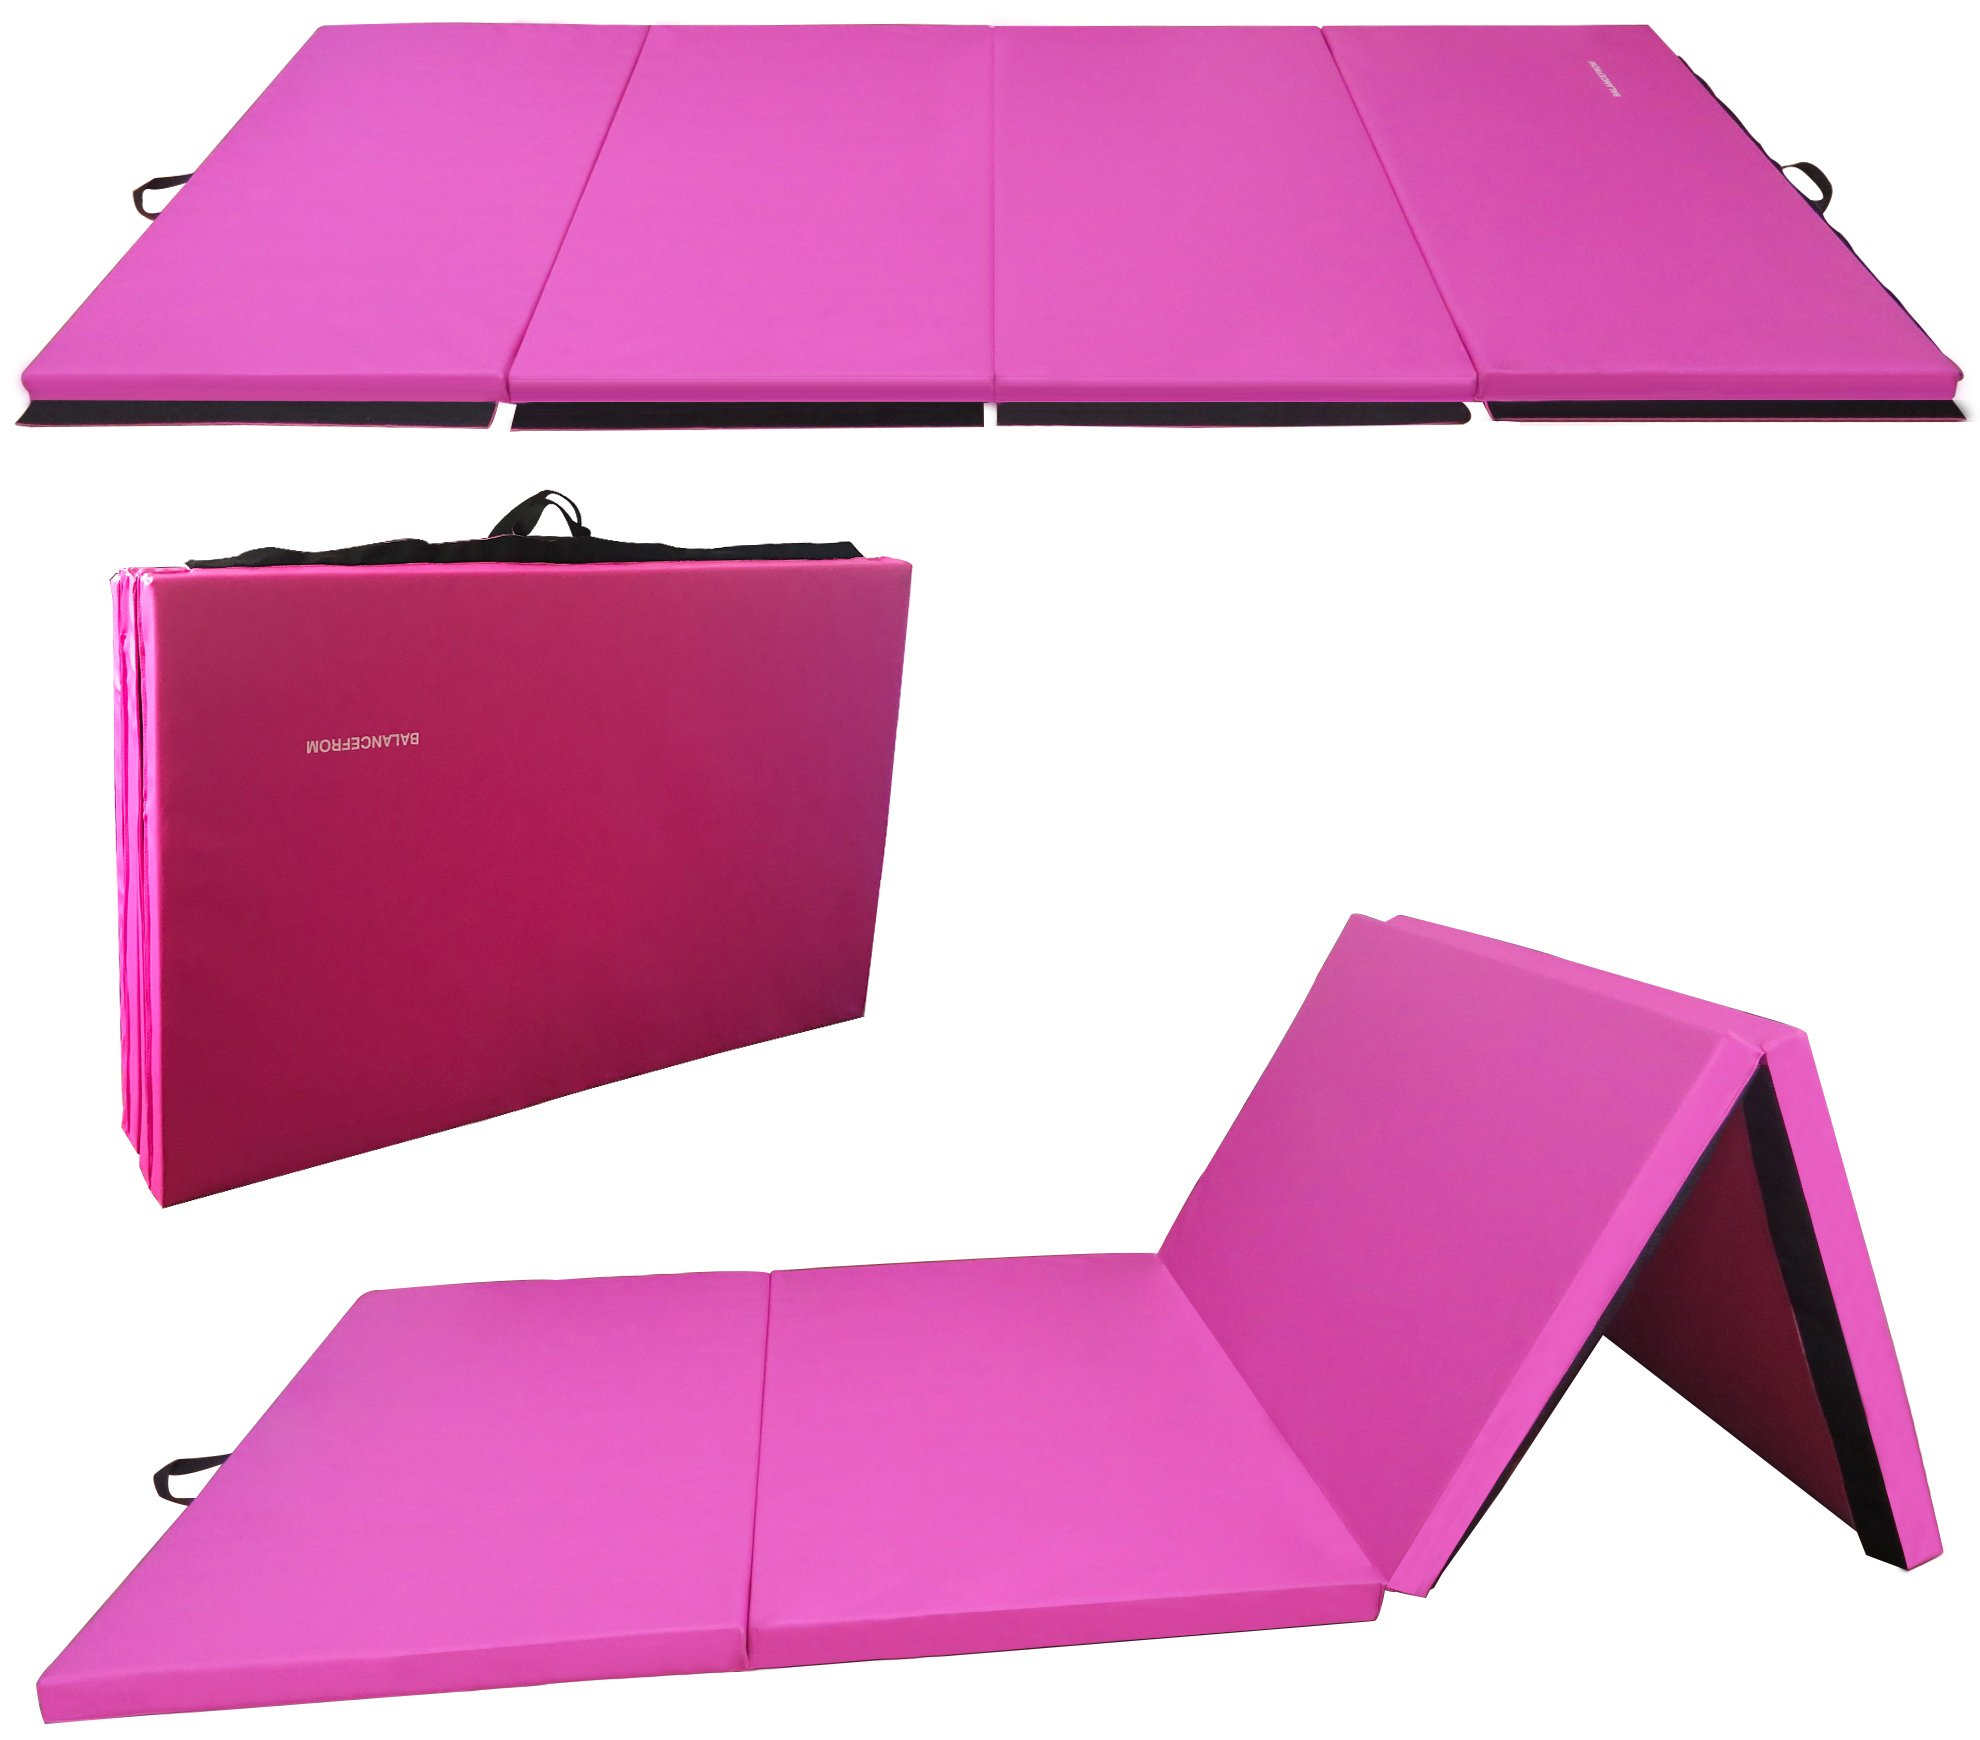 BalanceFrom BFGR-01PK All-Purpose Extra Thick High Density Anti-Tear Gymnastics Folding Exercise Aerobics Mats, 4' x 10' x 2''